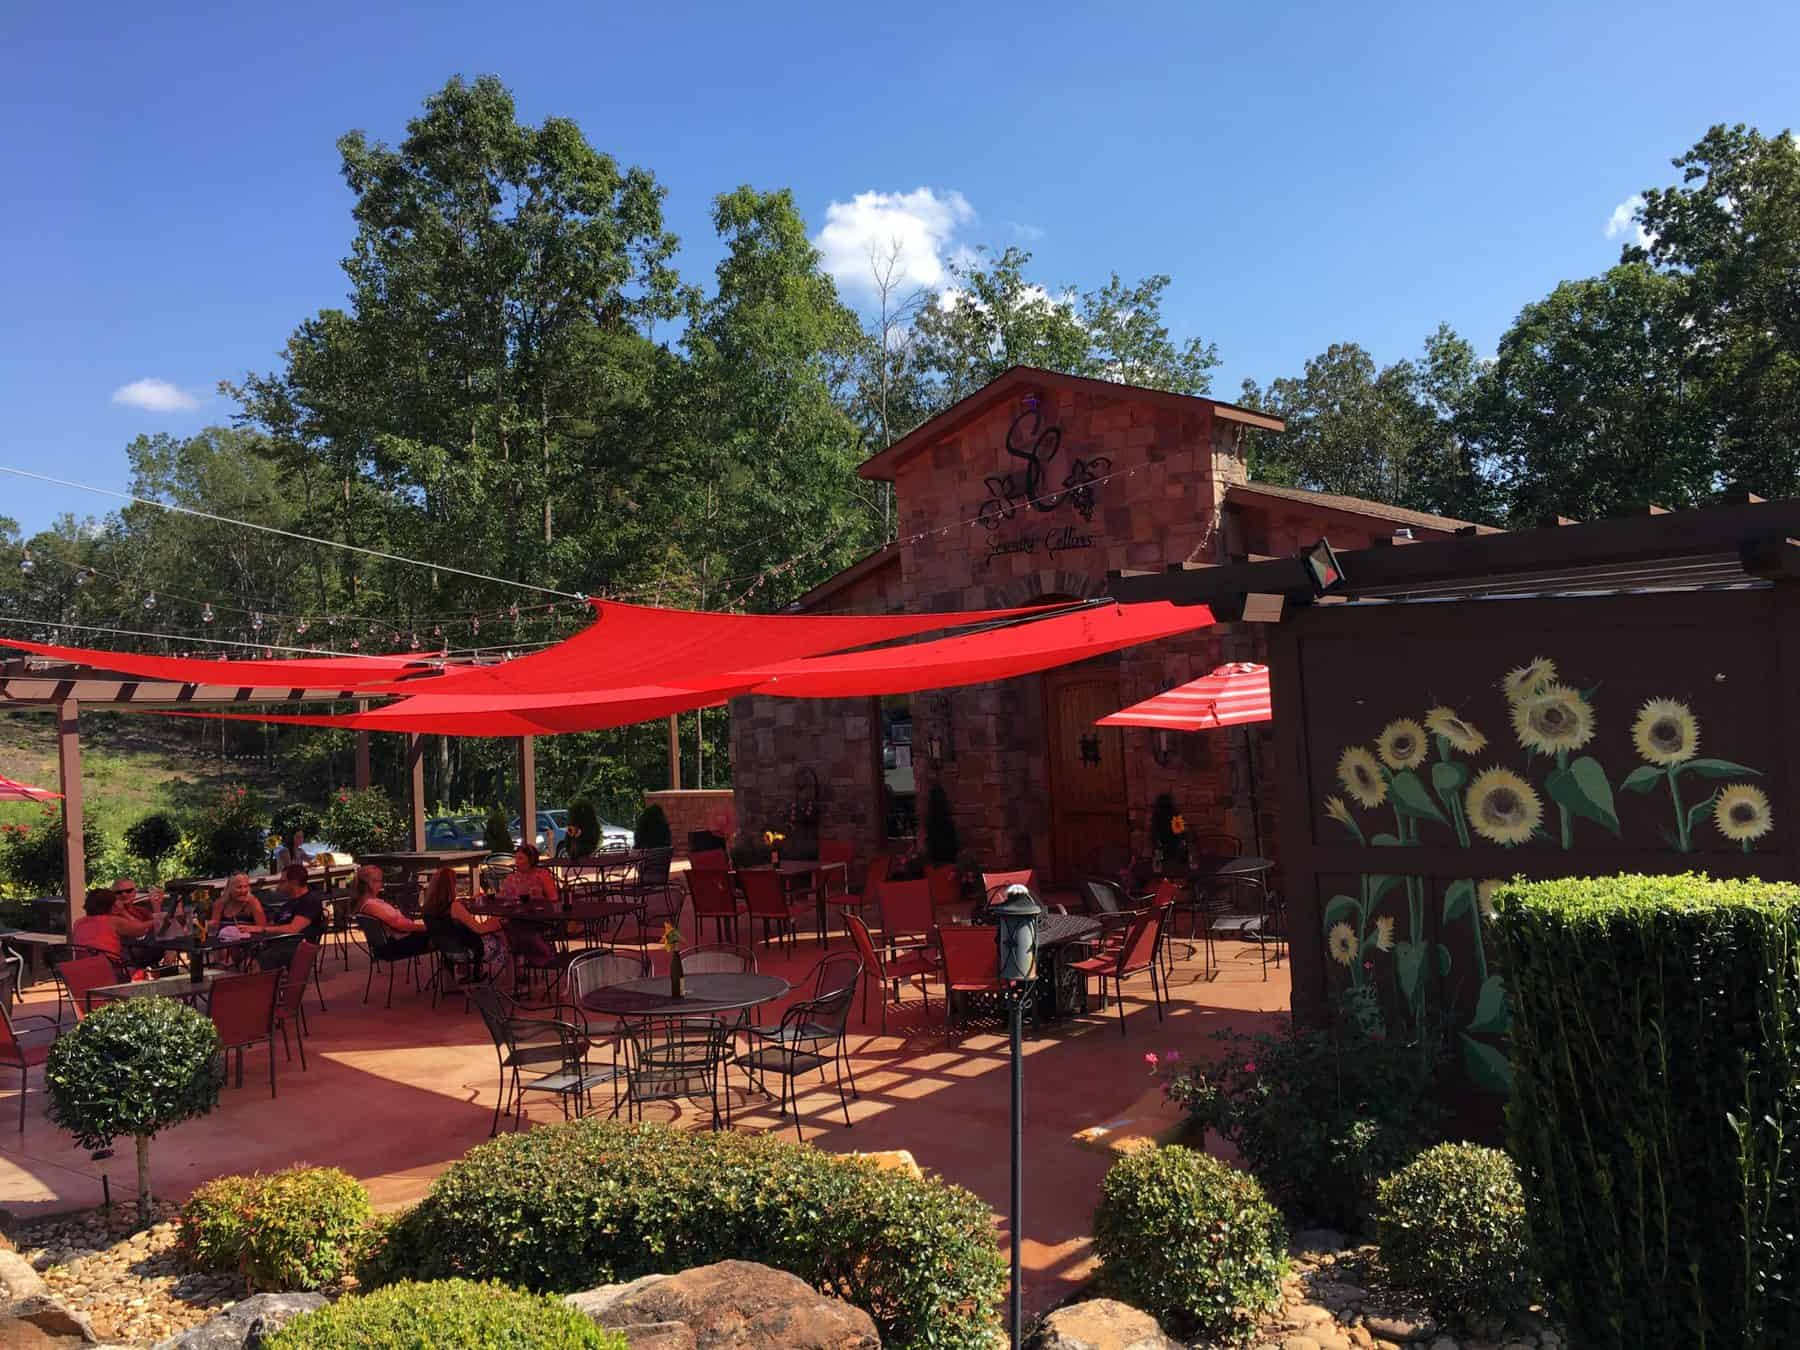 Outdoor seating at Serenity Cellars